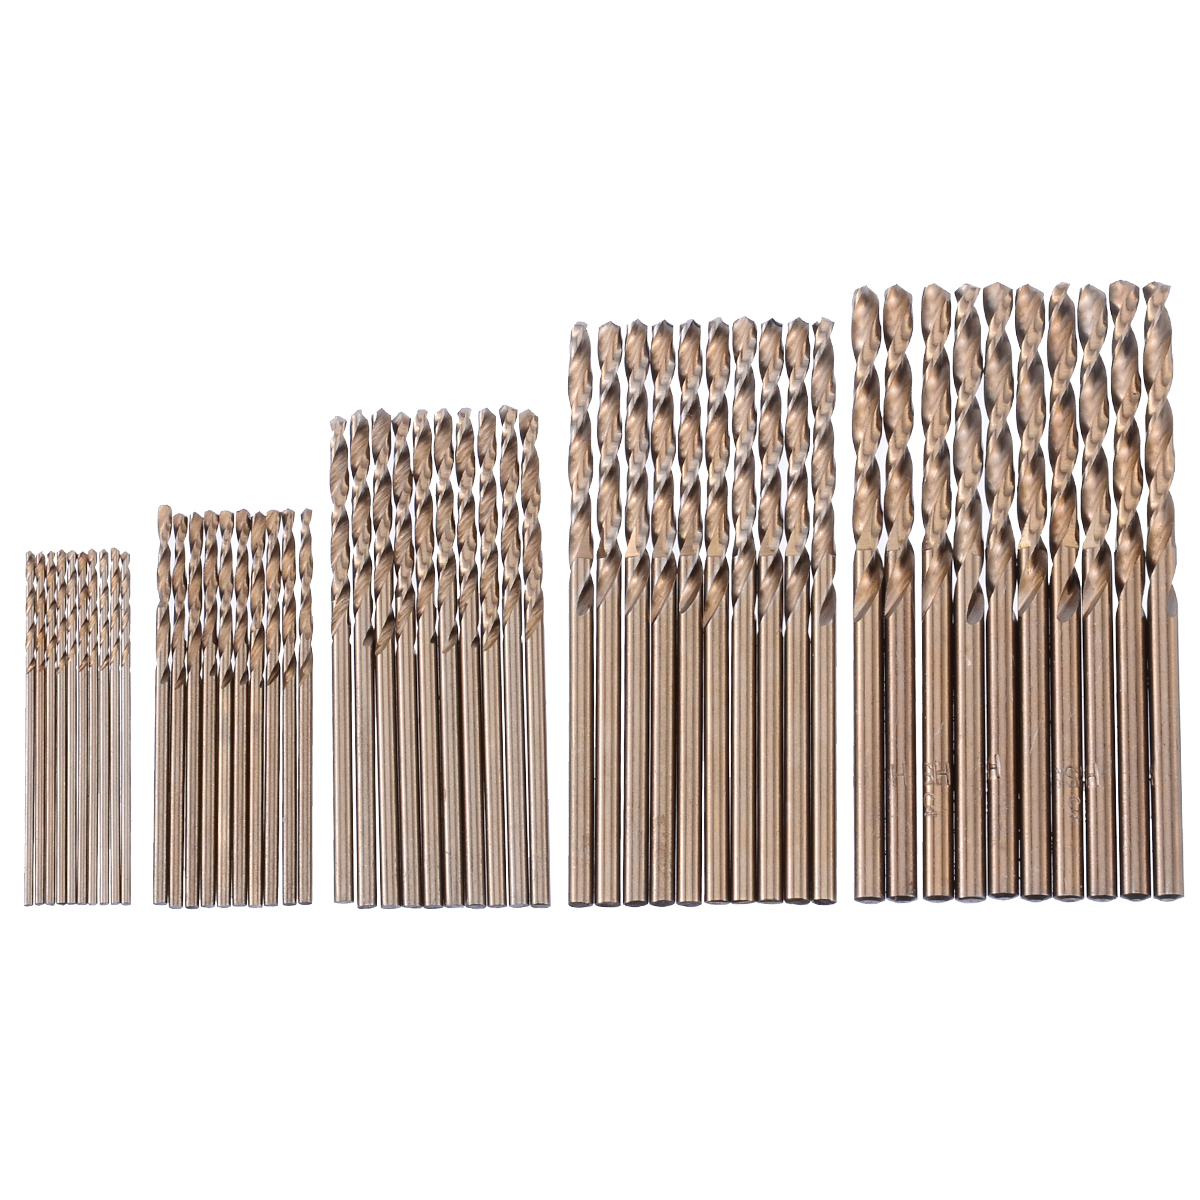 50pcs/set M35 Material Cobalt Drill Bits Set 1/1.5/2/2.5/3mm Size Drill Force Tool For Hardened Steel Cast Iron Drilling Tool